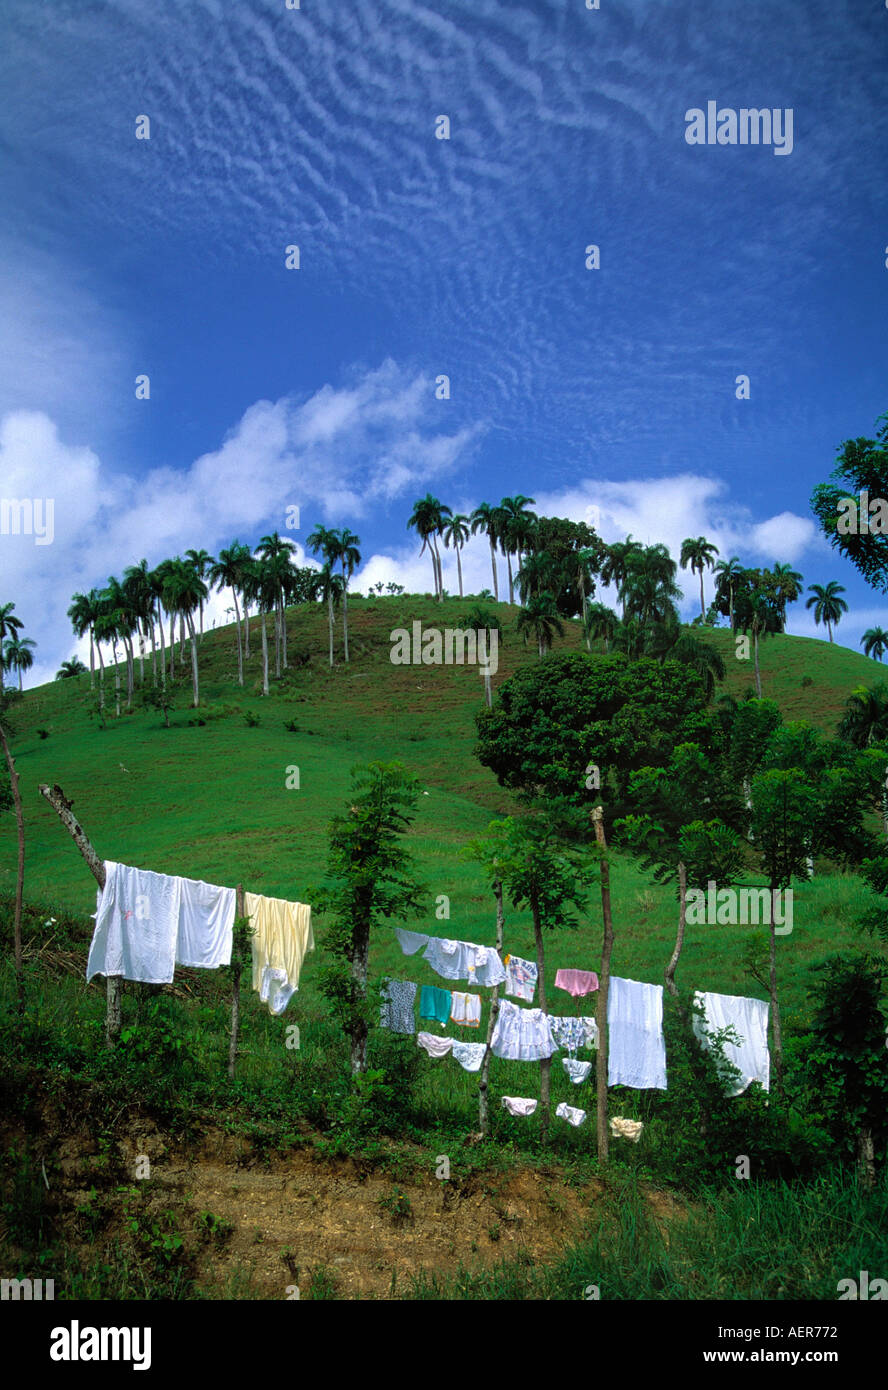 clothes on clothesline dominican republic archipelago of the greater antilles caribbean - Stock Image